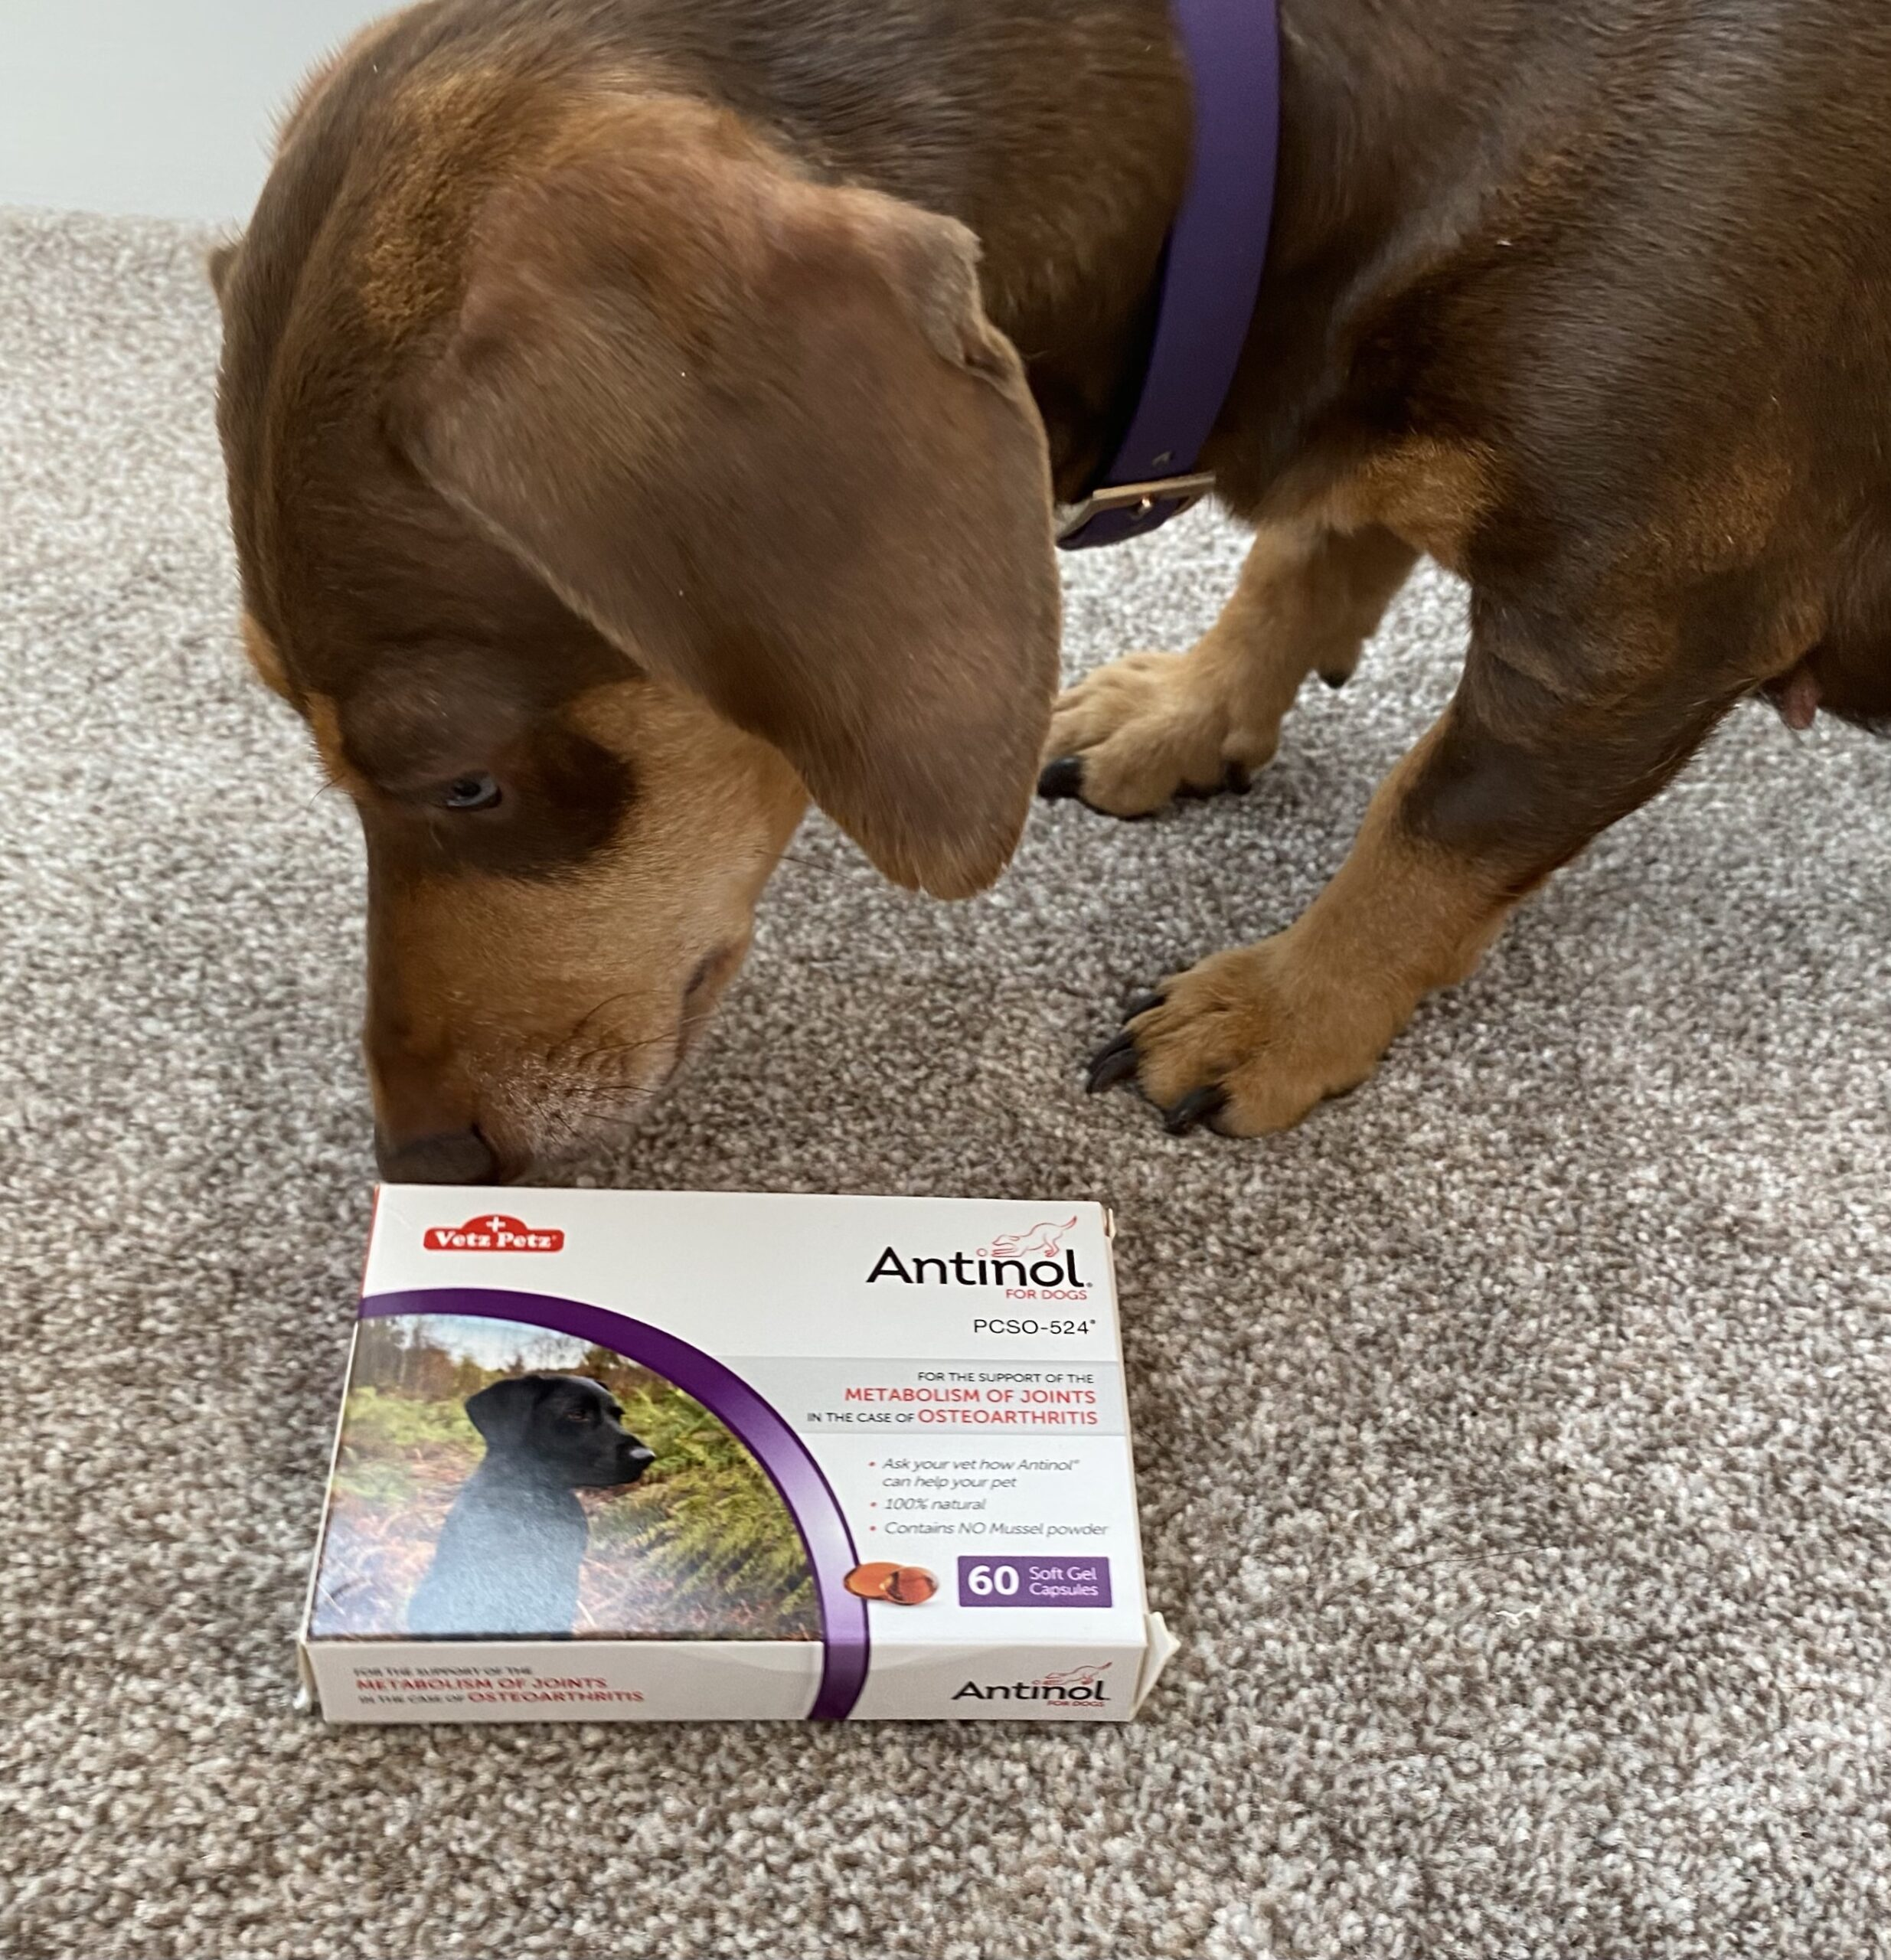 preventing joint problems for dogs with antinol